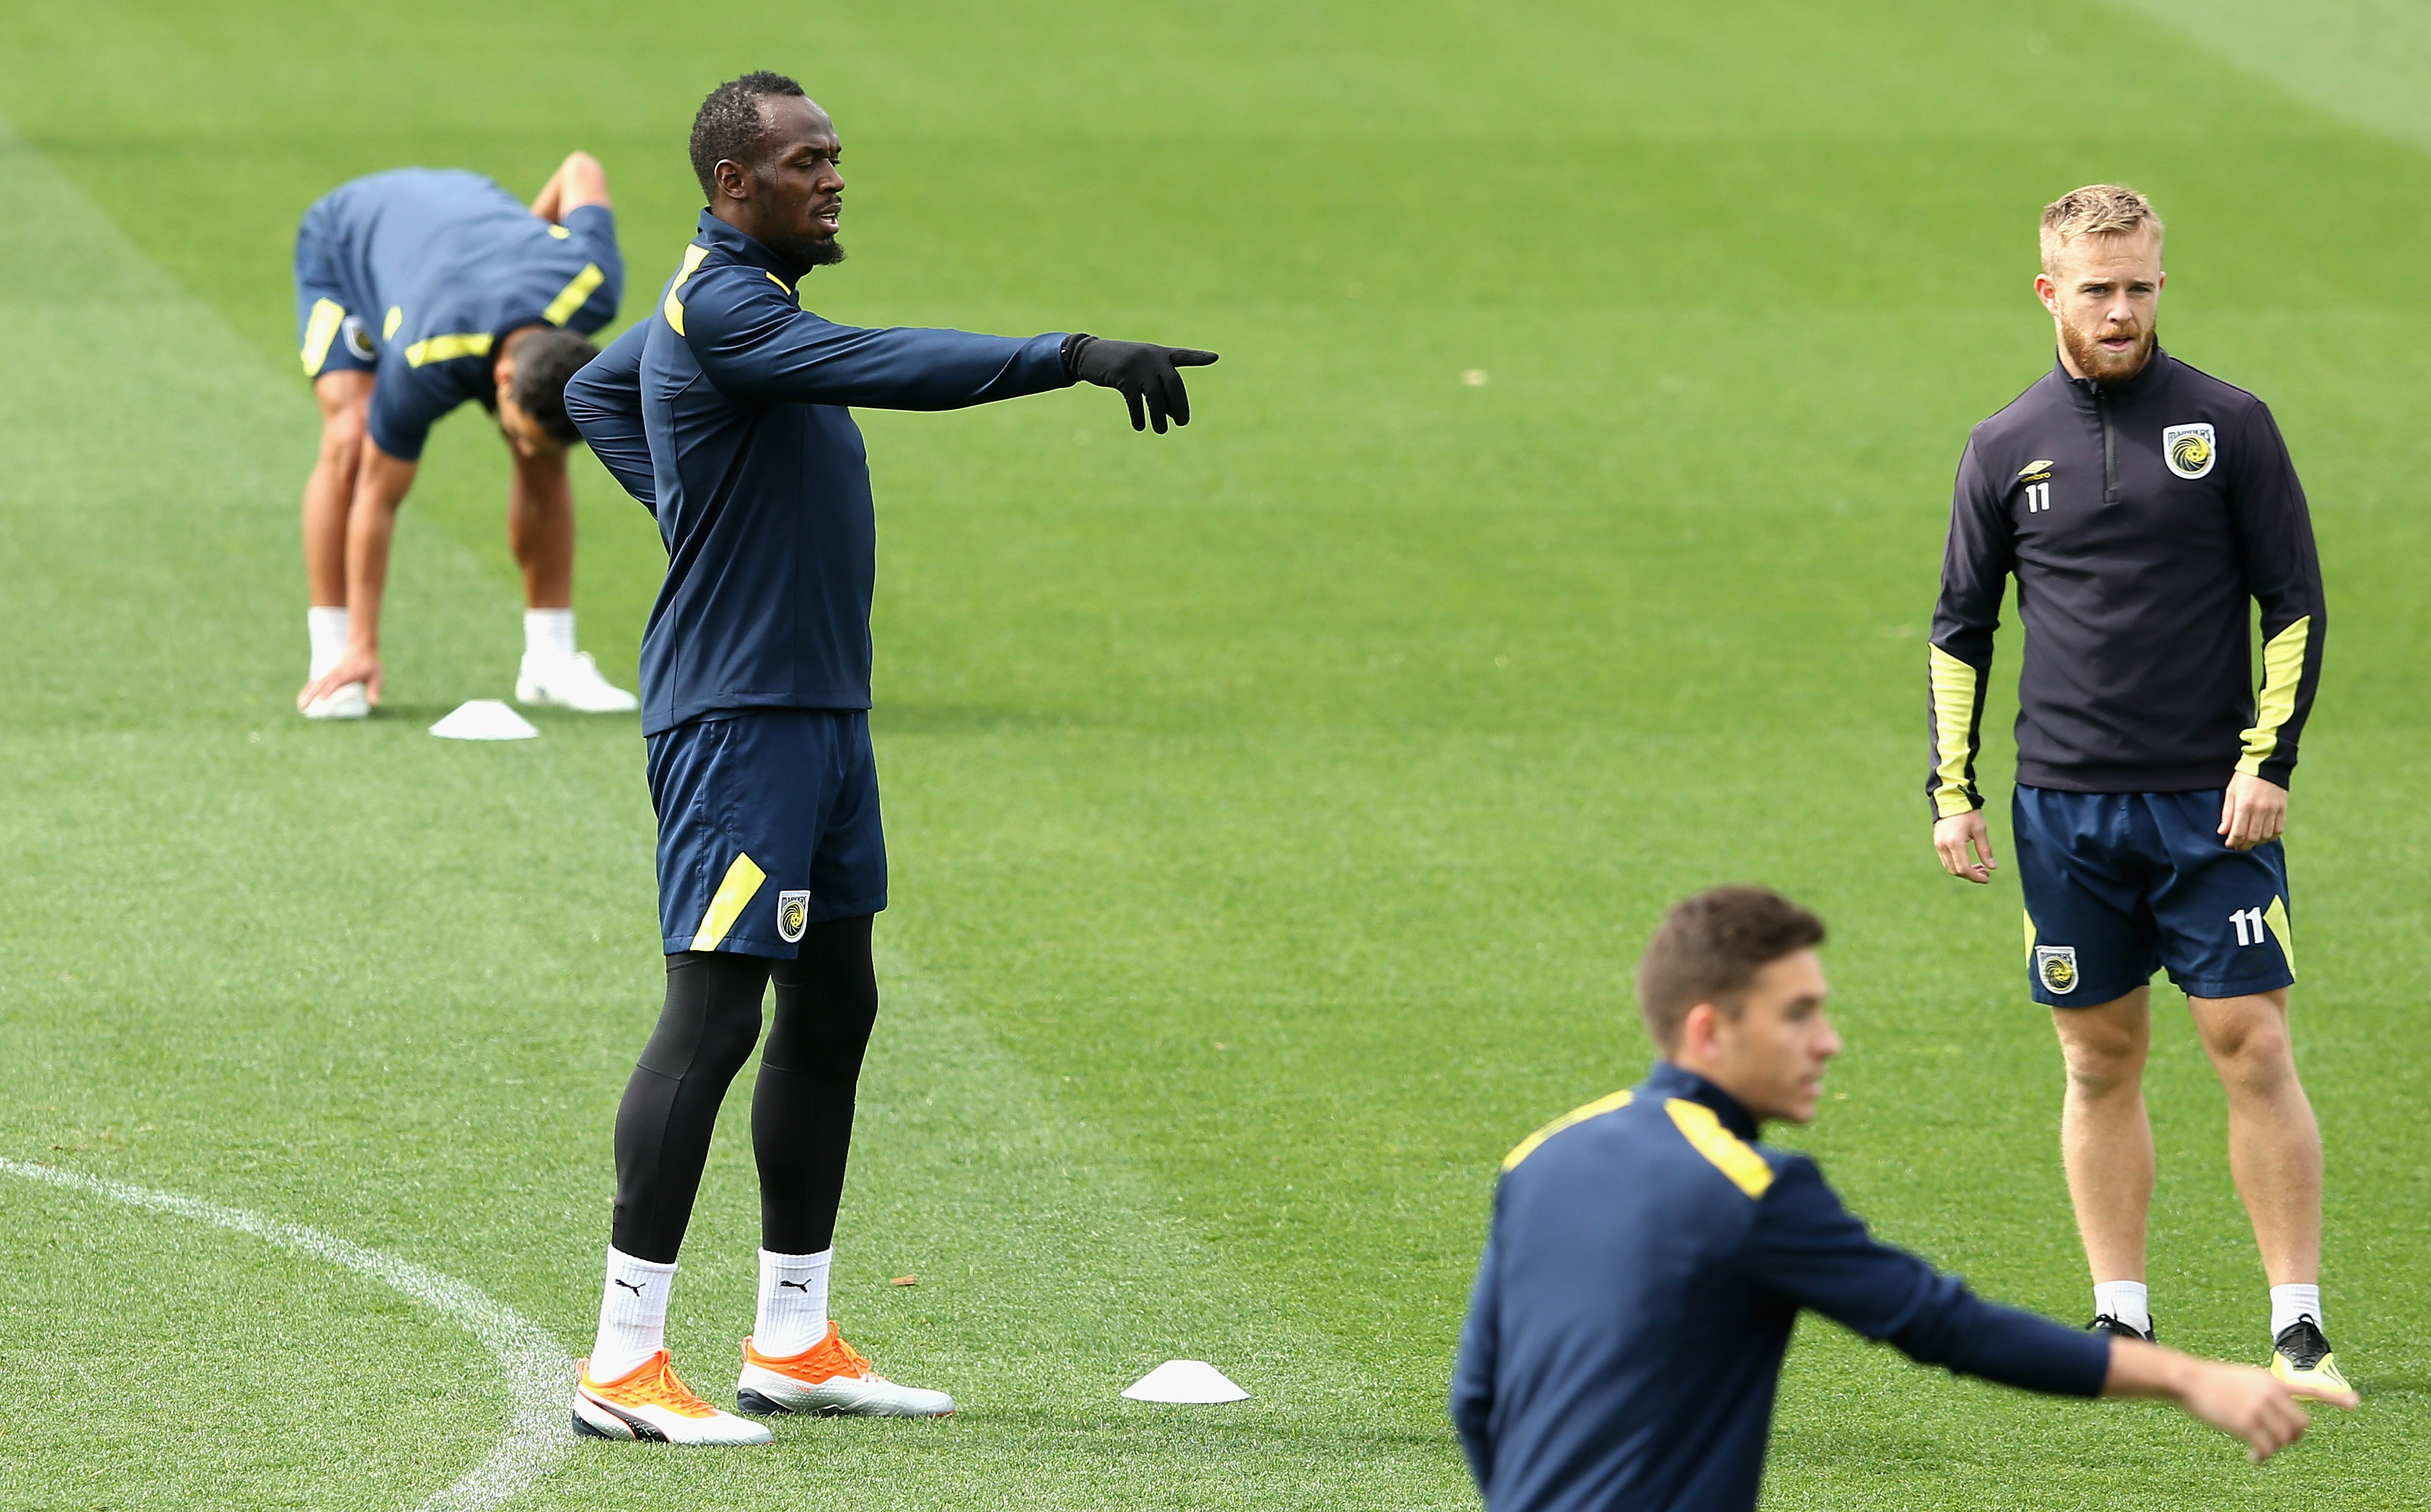 Usain Bolt and Connor Pain in Mariners training